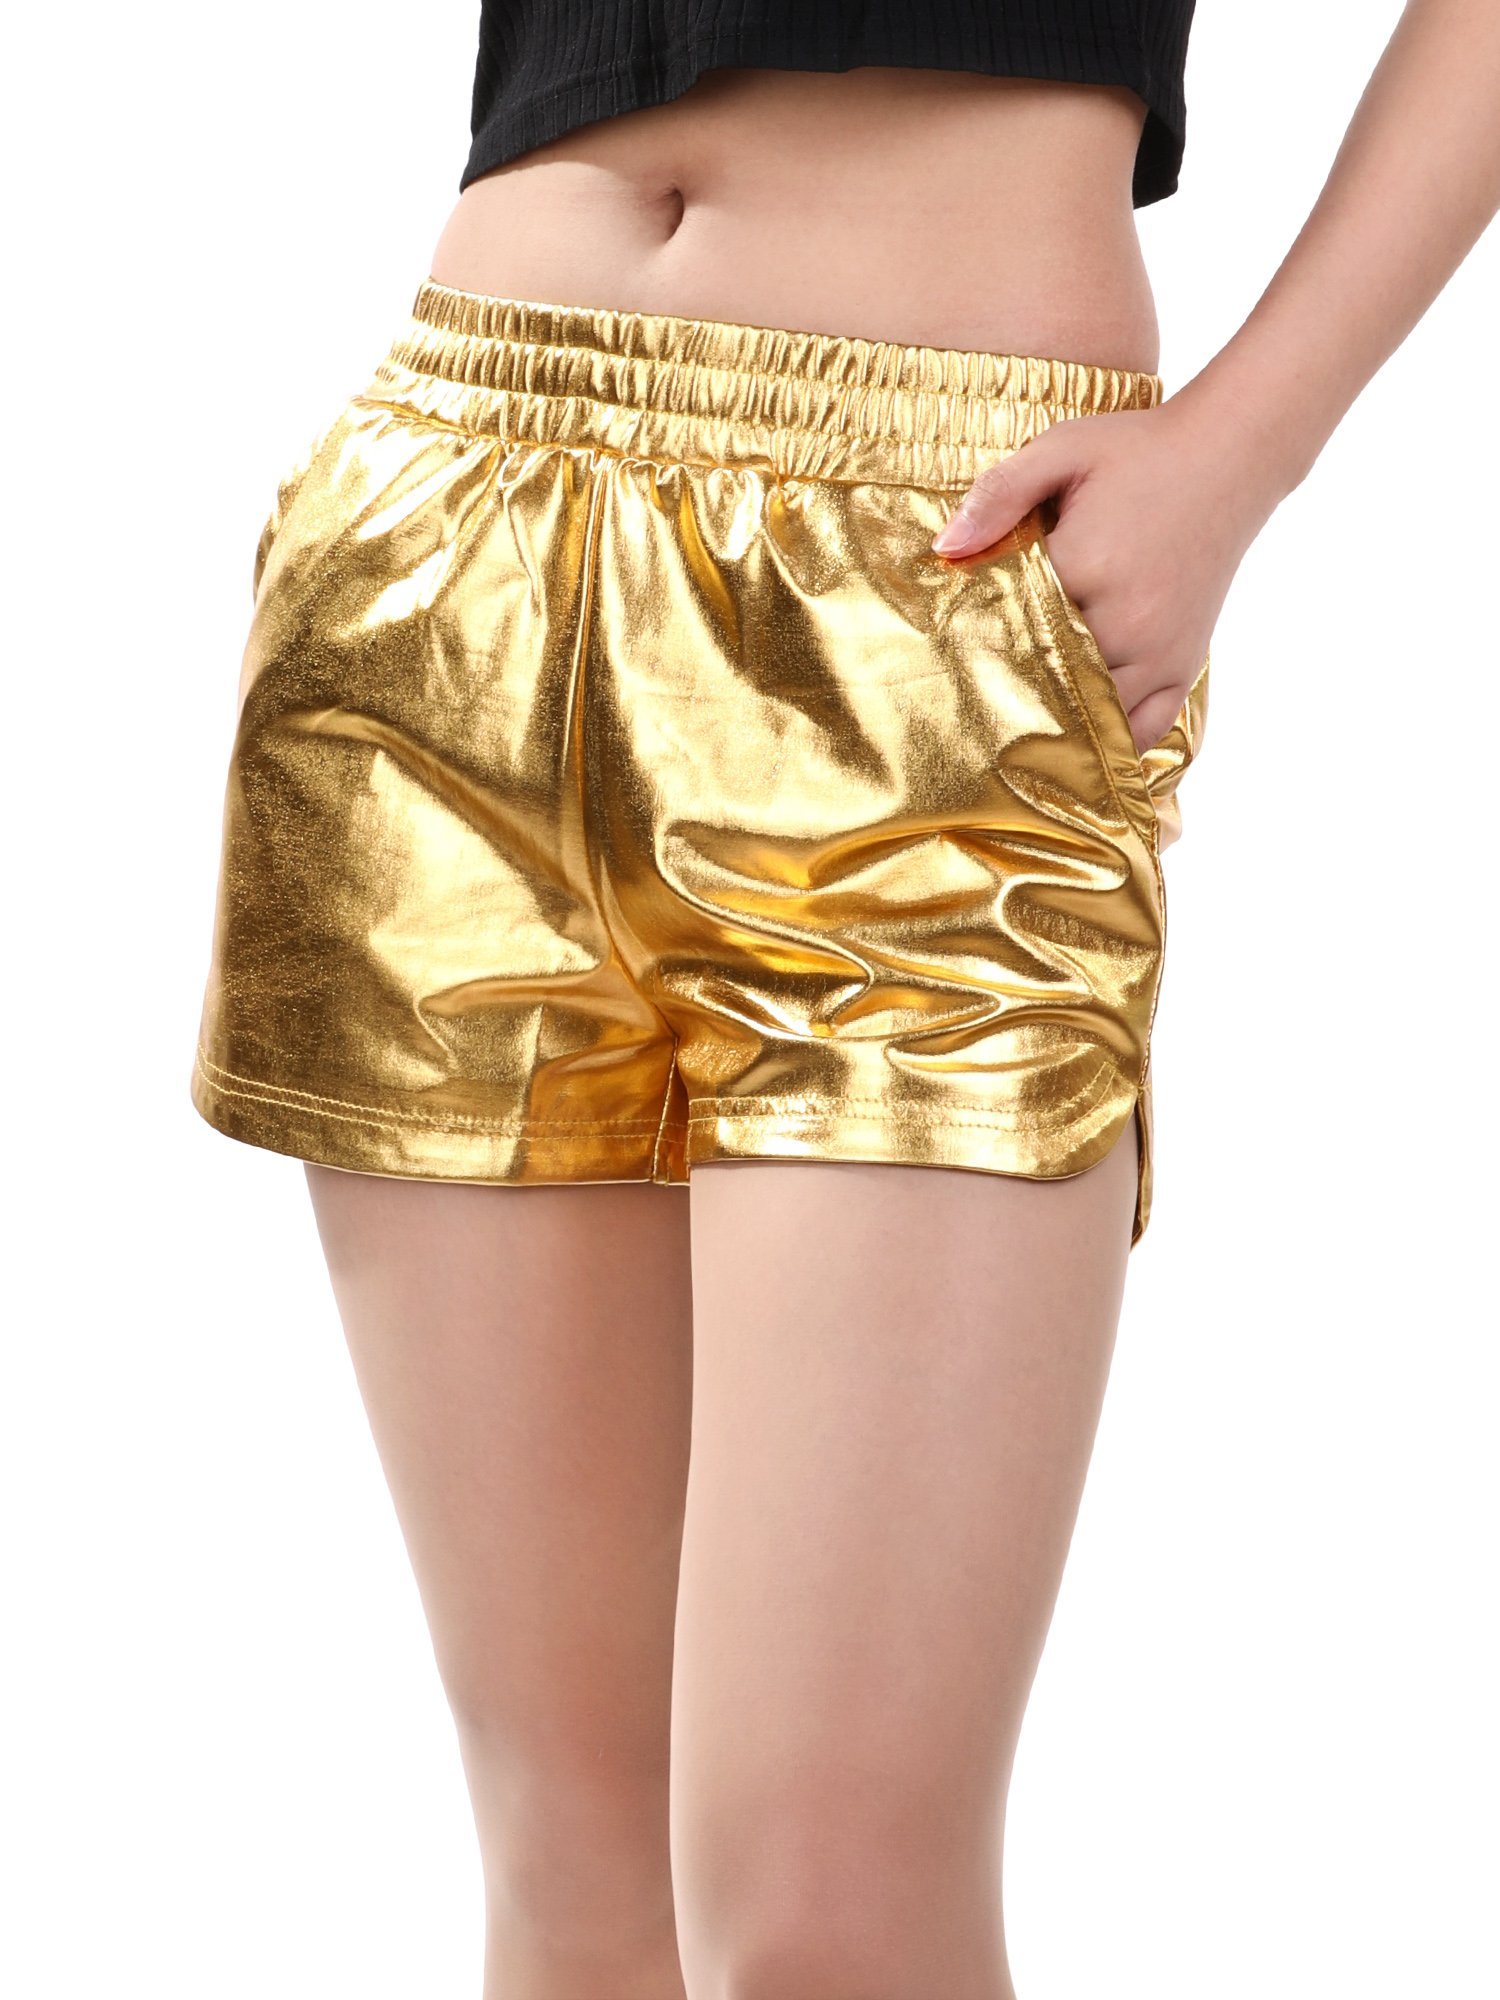 Skylety Metallic Shiny Shorts Women Sparkly Hot Shorts Girl Yoga Outfit Casual Loose Shorts (L Size, Gold) by Skylety (Image #7)